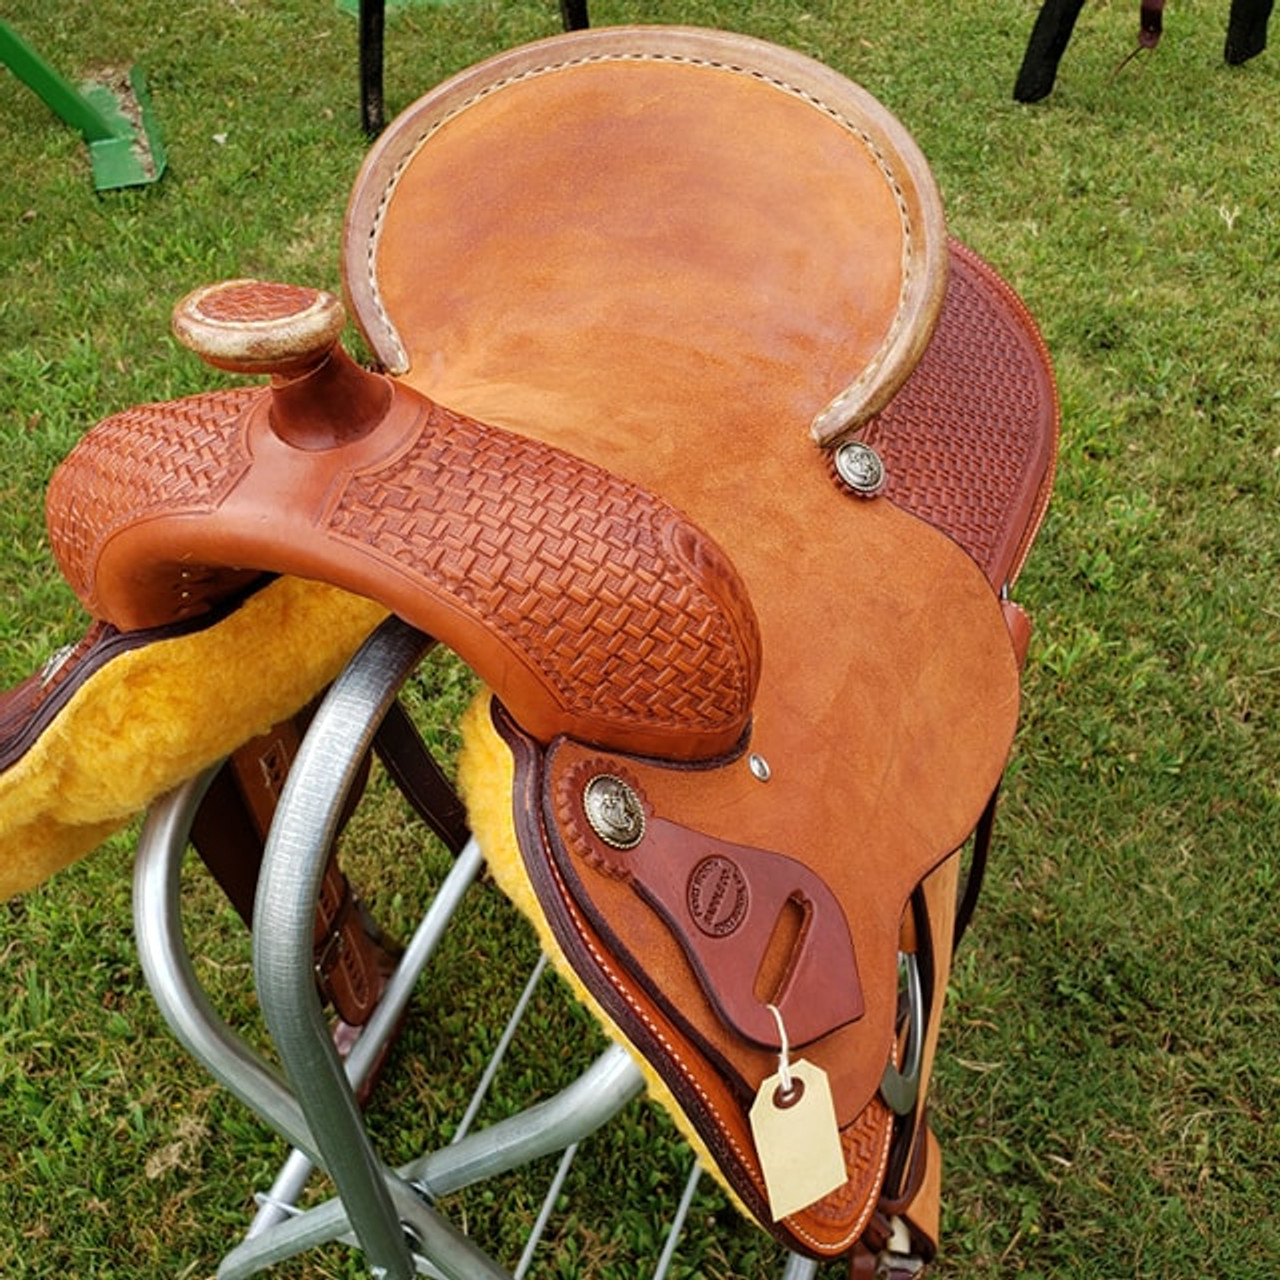 "NEW 13.5"" PLAYDAY SADDLE Got a young rider who likes play-days and trails, but doesn't want a barrel saddle? This one offers the best of both worlds... the secure deep roughout pencil roll seat and barrel stirrup performance combined with the general appearance of a buckaroo saddle. It can be as serious a saddle as they want, as it's built on a youth sized version of our Mounted Shooter tree.  Pick your own stirrups and conchos. We CAN shorten fenders if needed. Includes latigo, offside, matching leather flank billets and flank cinch, and cinch hobble.  NOT some cheap toy saddle... This is a serial numbered real leather Texas built hand tooled Fort Worth Saddle Co saddle with a US made rawhide over hardwood tree. Your young rider may someday pass it down to their own buckaroo.   Gullet size is 7 inch. Made in USA. Limited lifetime warranty.  S694"